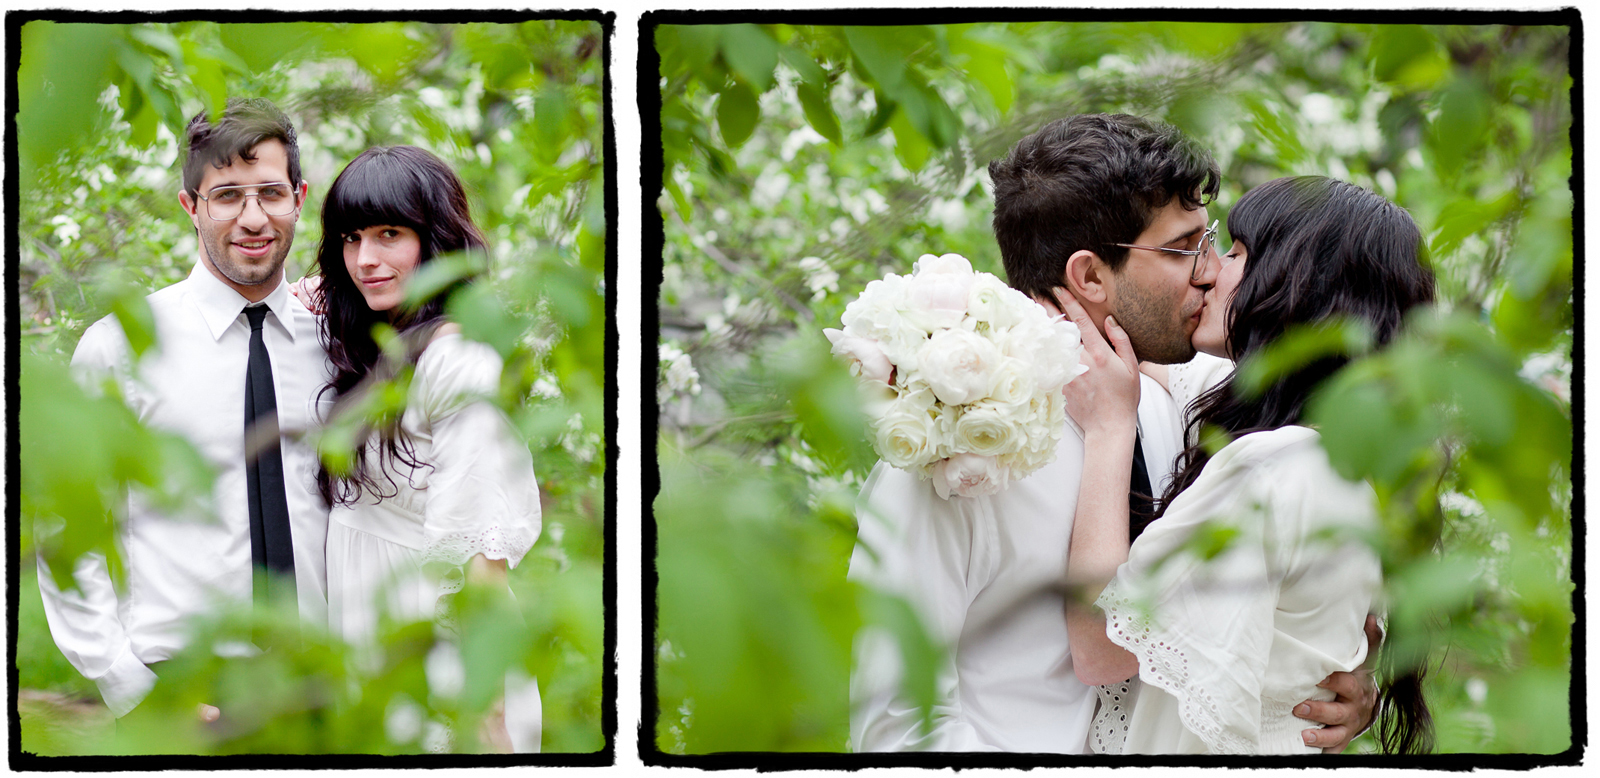 Mookie & Lisa were married at City Hall in Manhattan.  I took these photos of them in the little tiny park across the street from the entrance to the city clerk's building.